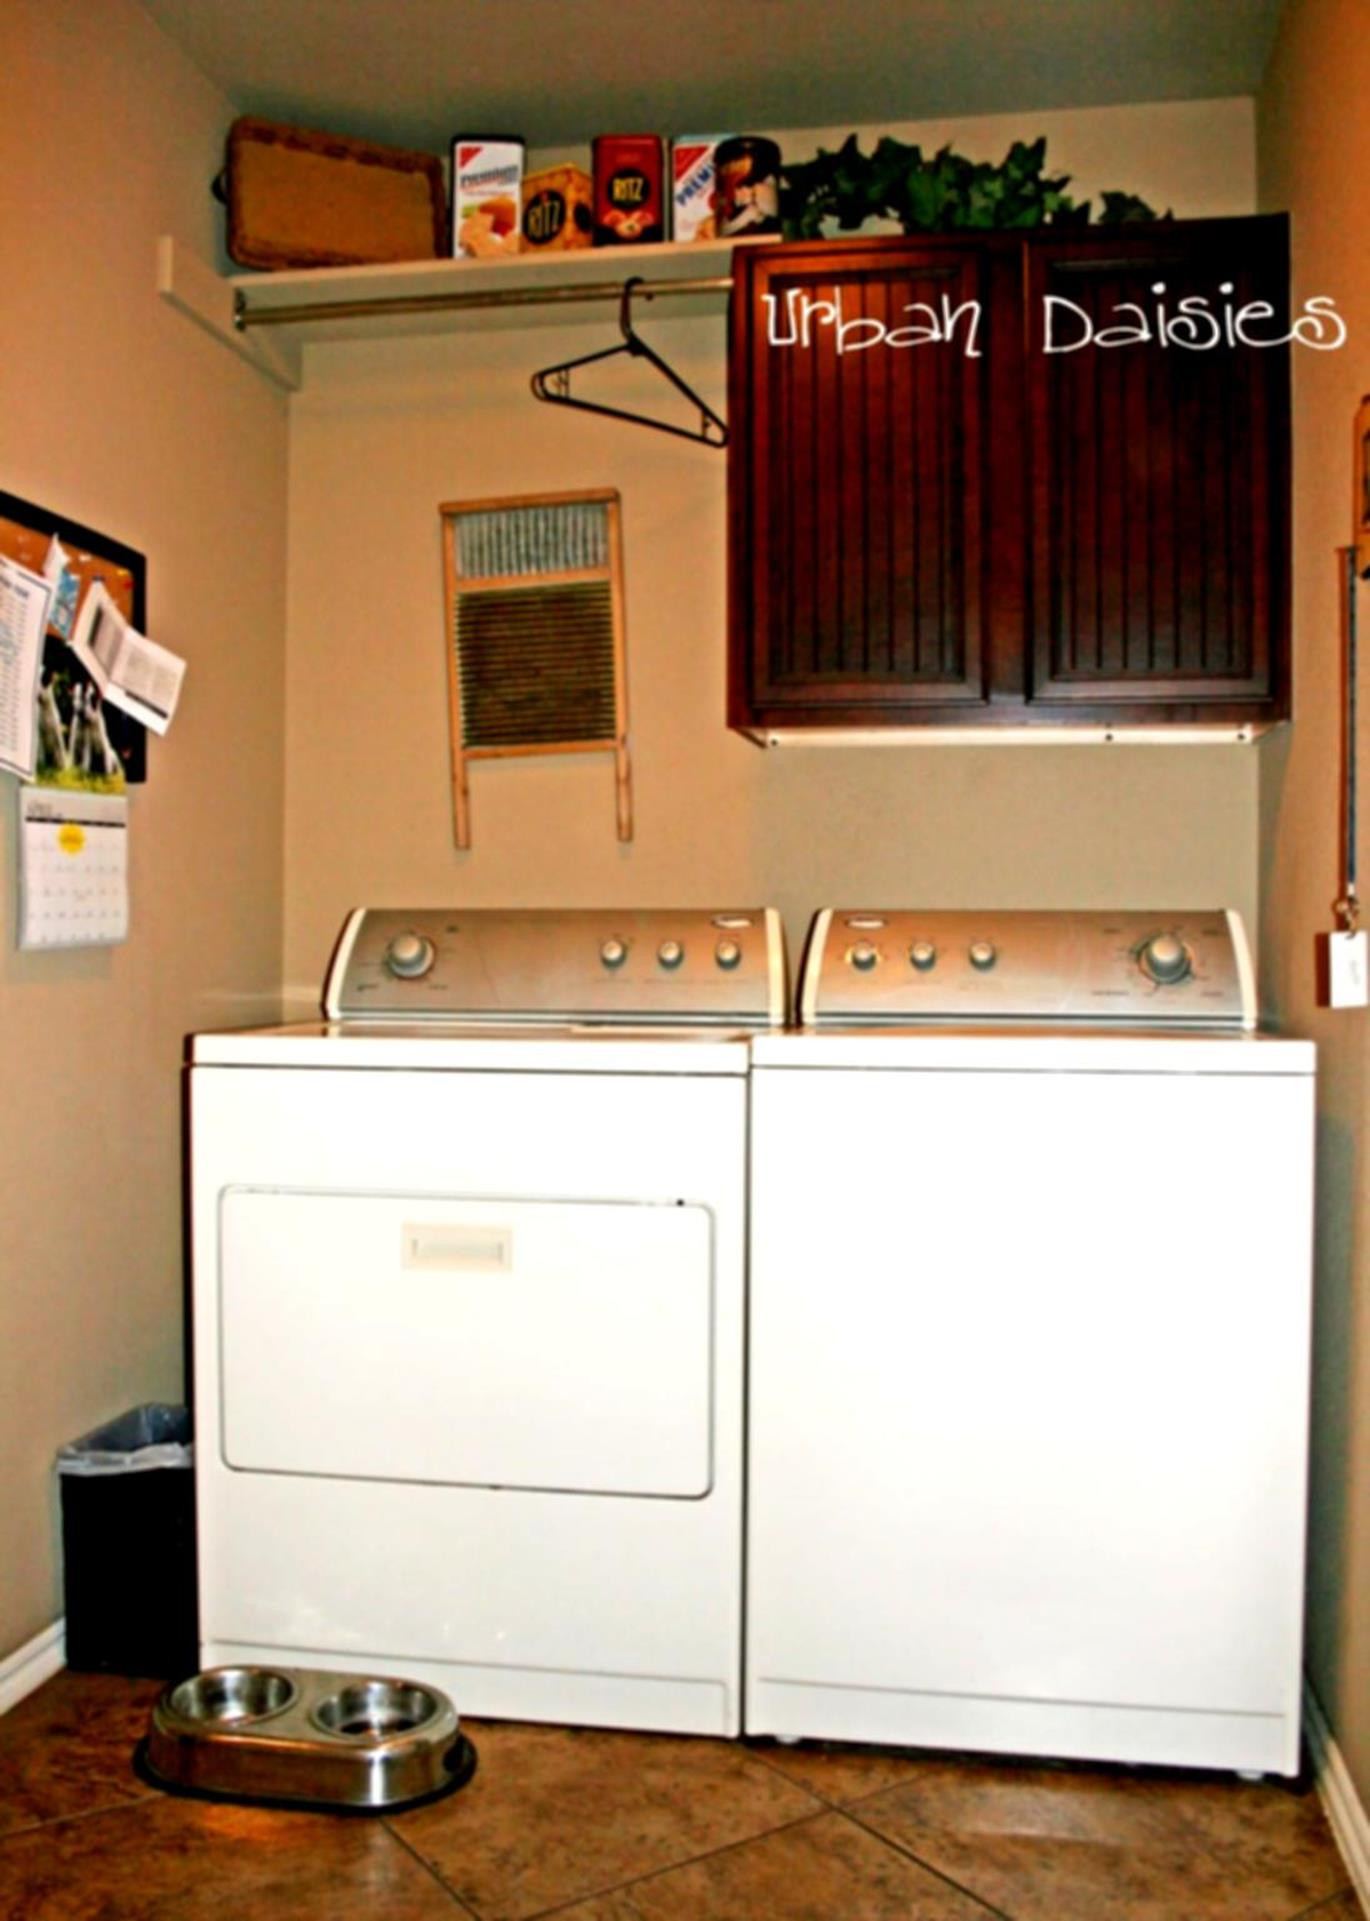 Best Cheap IKEA Cabinets Laundry Room Storage Ideas 19